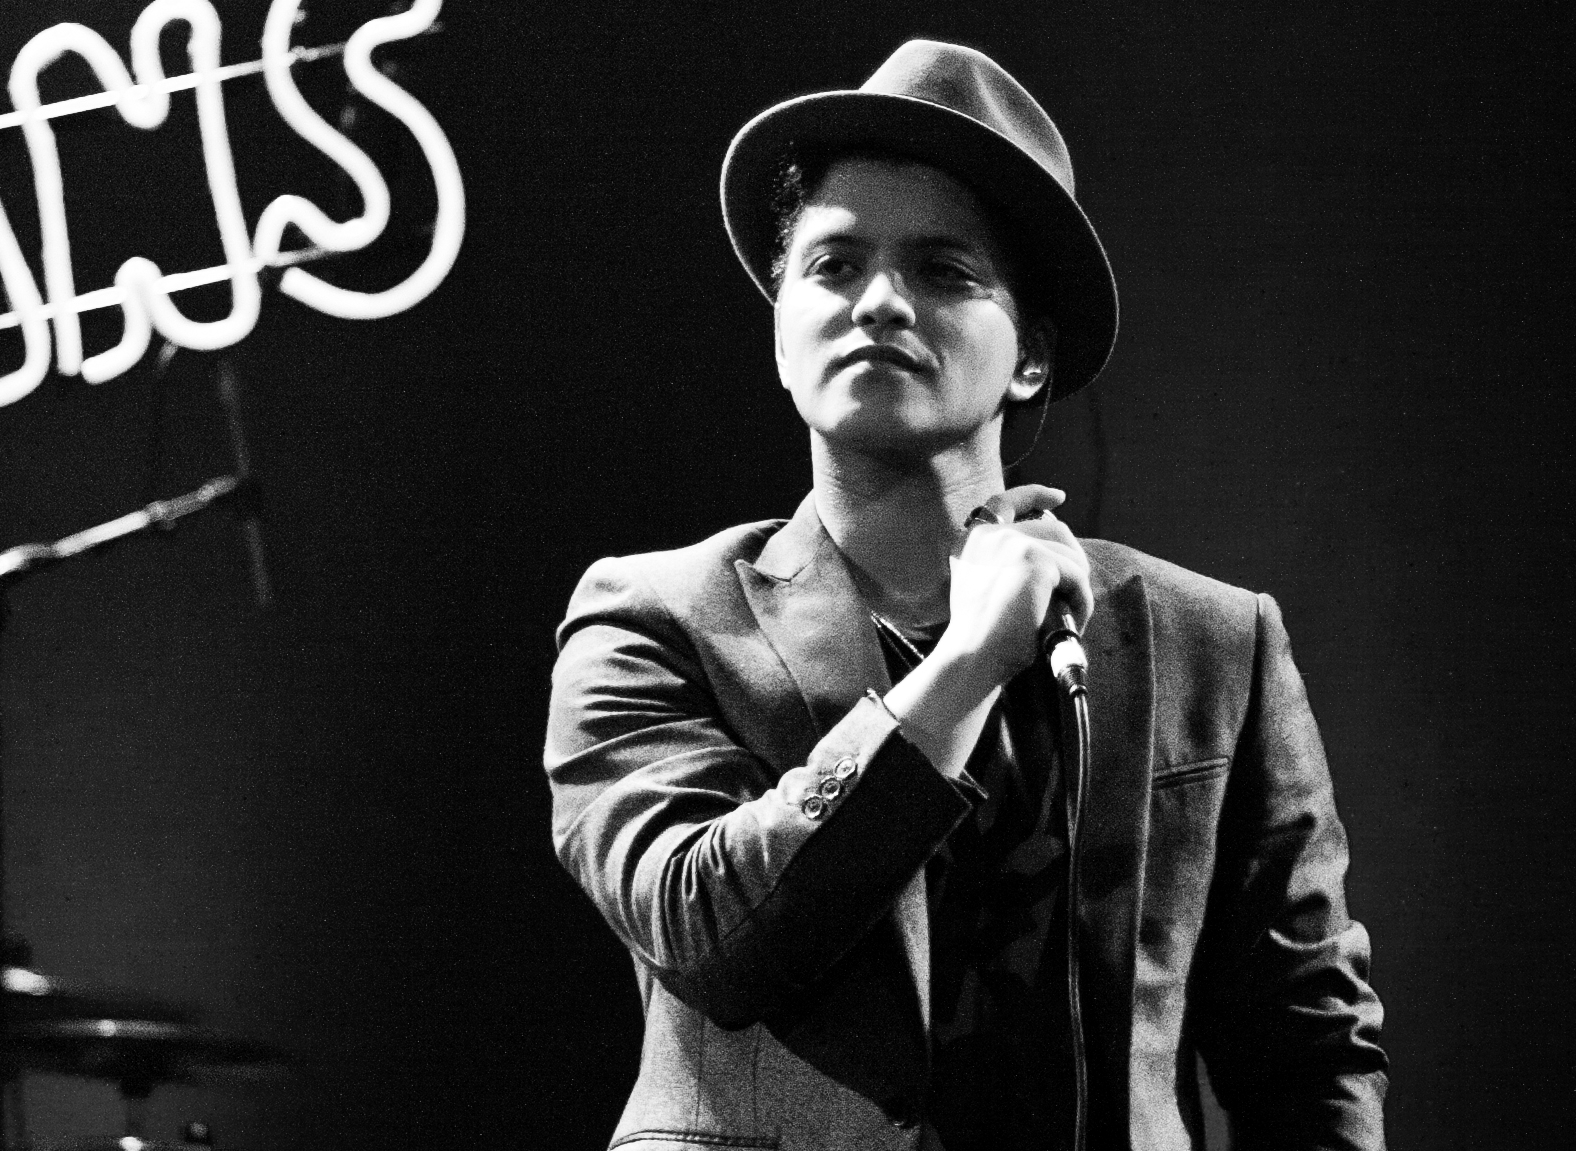 American superstar Bruno Mars will be performing at Krakow's Tauron Arena this Saturday